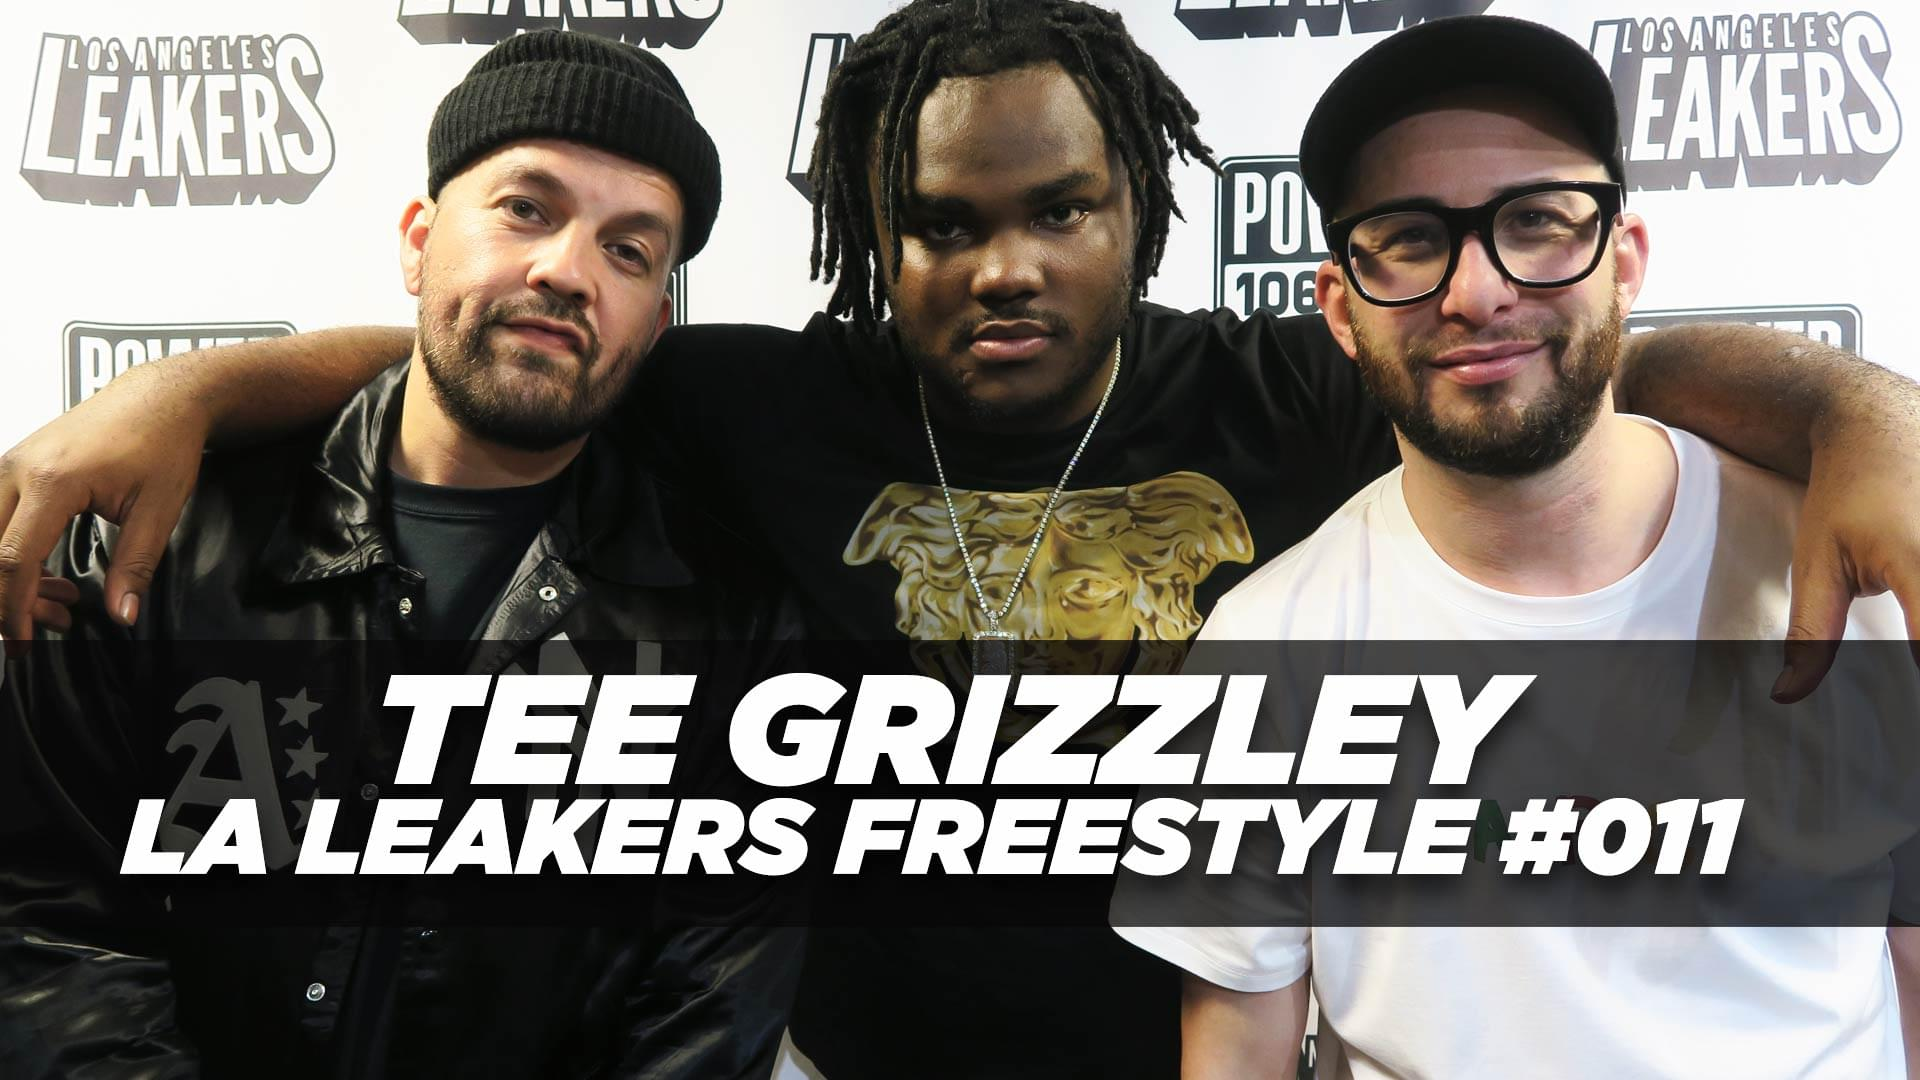 [FREESTYLE] Tee Grizzley Spits Bars for L.A. Leakers